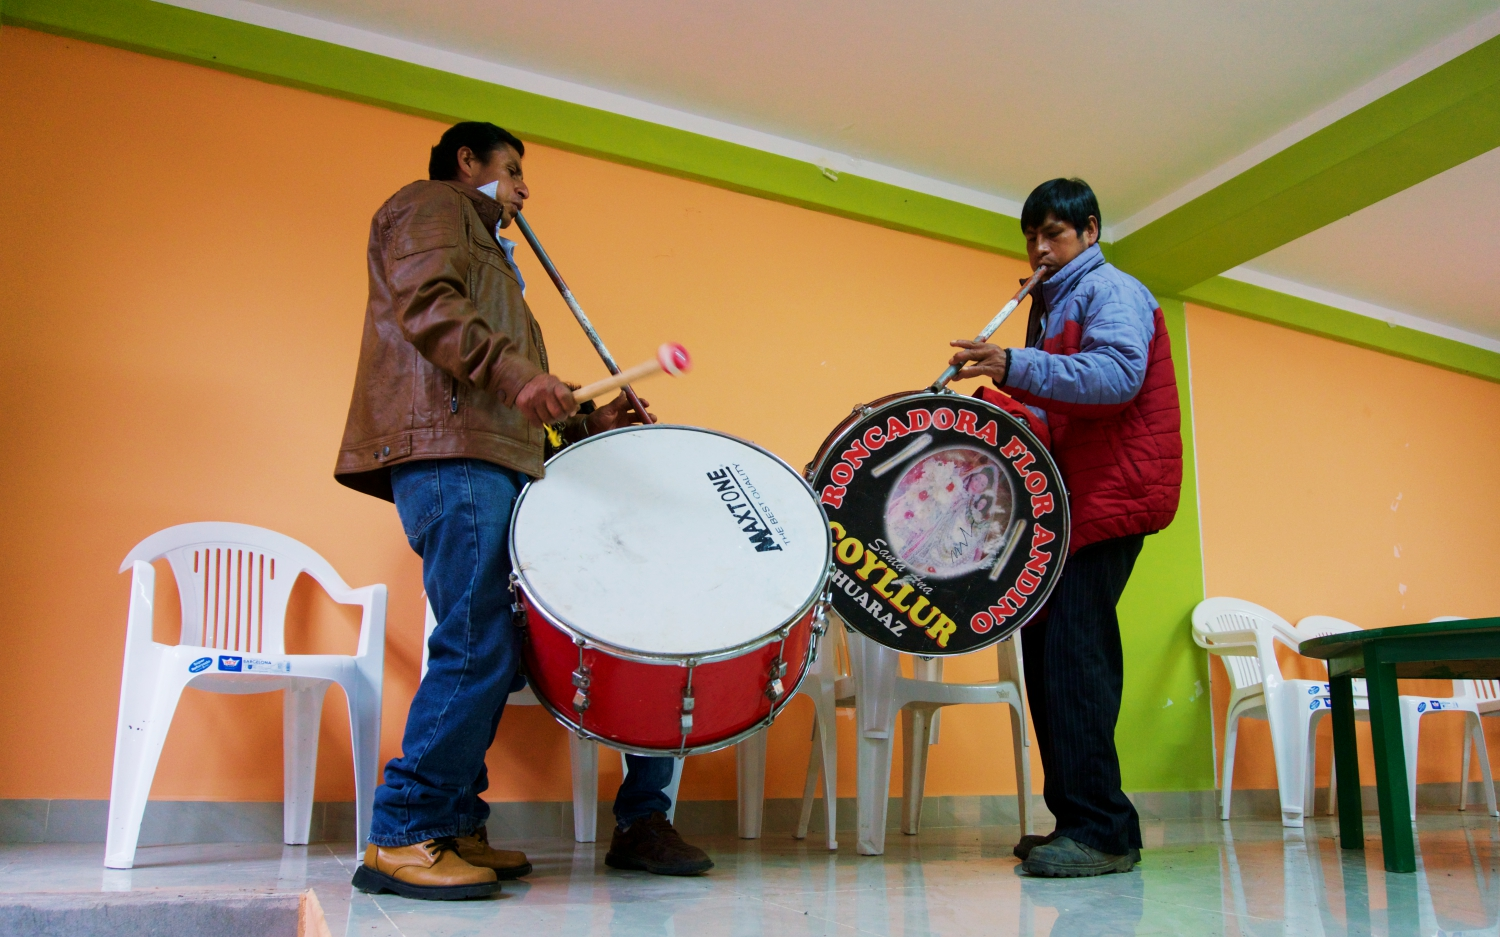 Local musicians signal the beginning of the tradition - many of the instruments are now made of modern materials and only a few still use the traditional sheep skin drums.